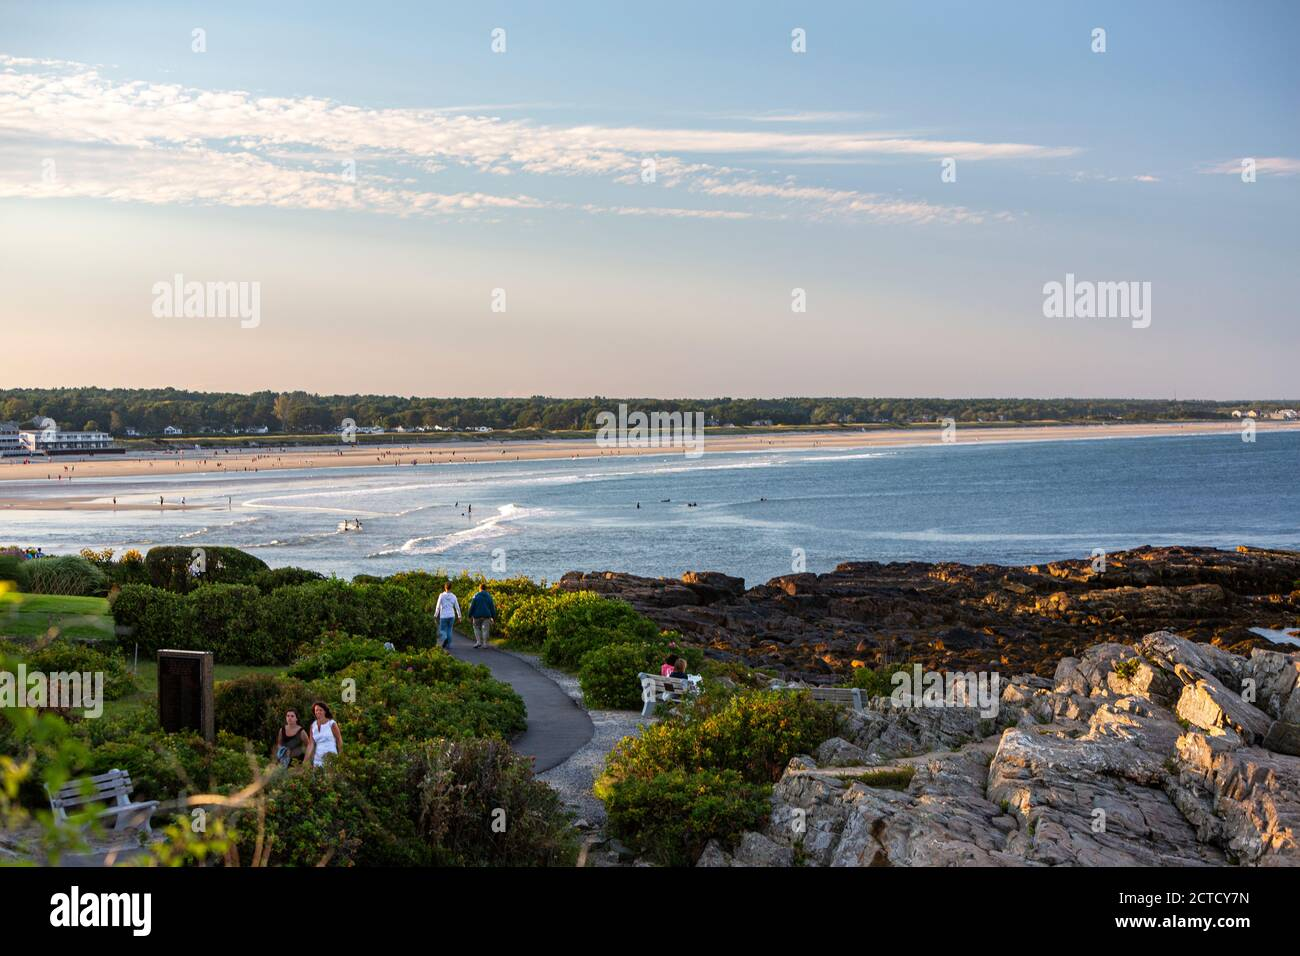 People walking along Marginal Way, Ogunquit Beach, Ogunquit, Maine, USA Stock Photo